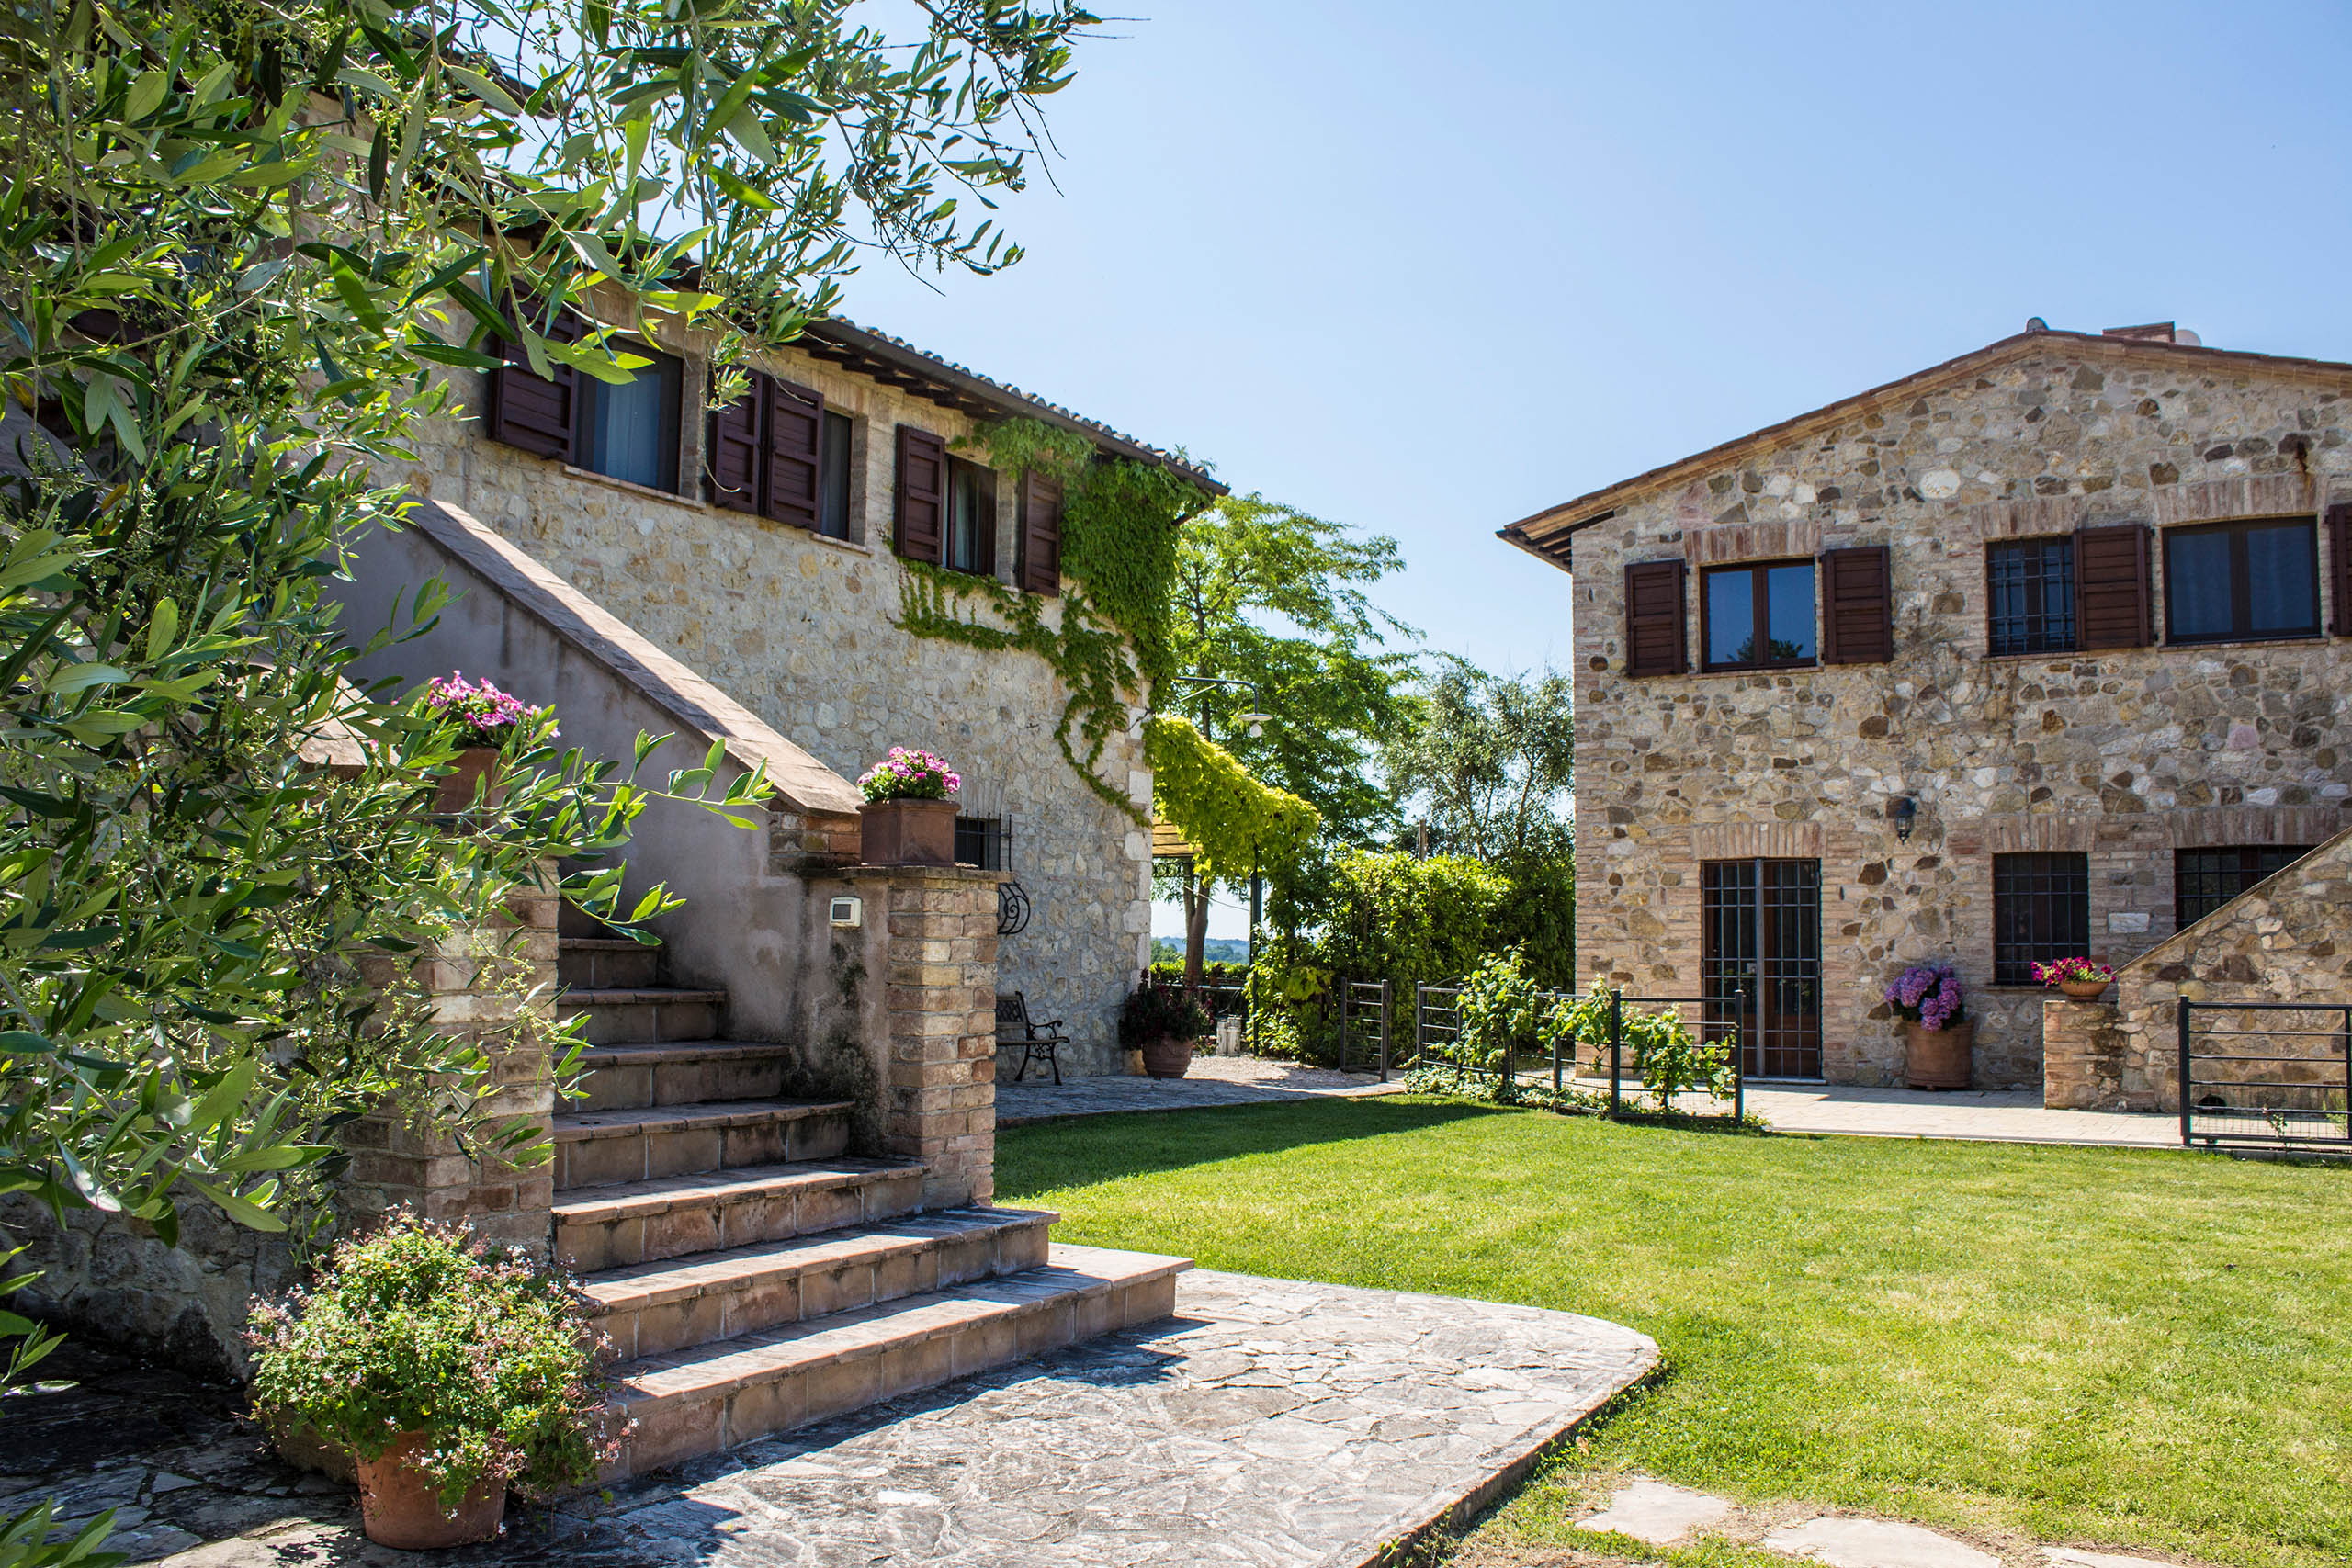 B&B, Country house and agritourism with pool in Umbria | Amelia (TR) - Farmhouse Poggio del Bolognino